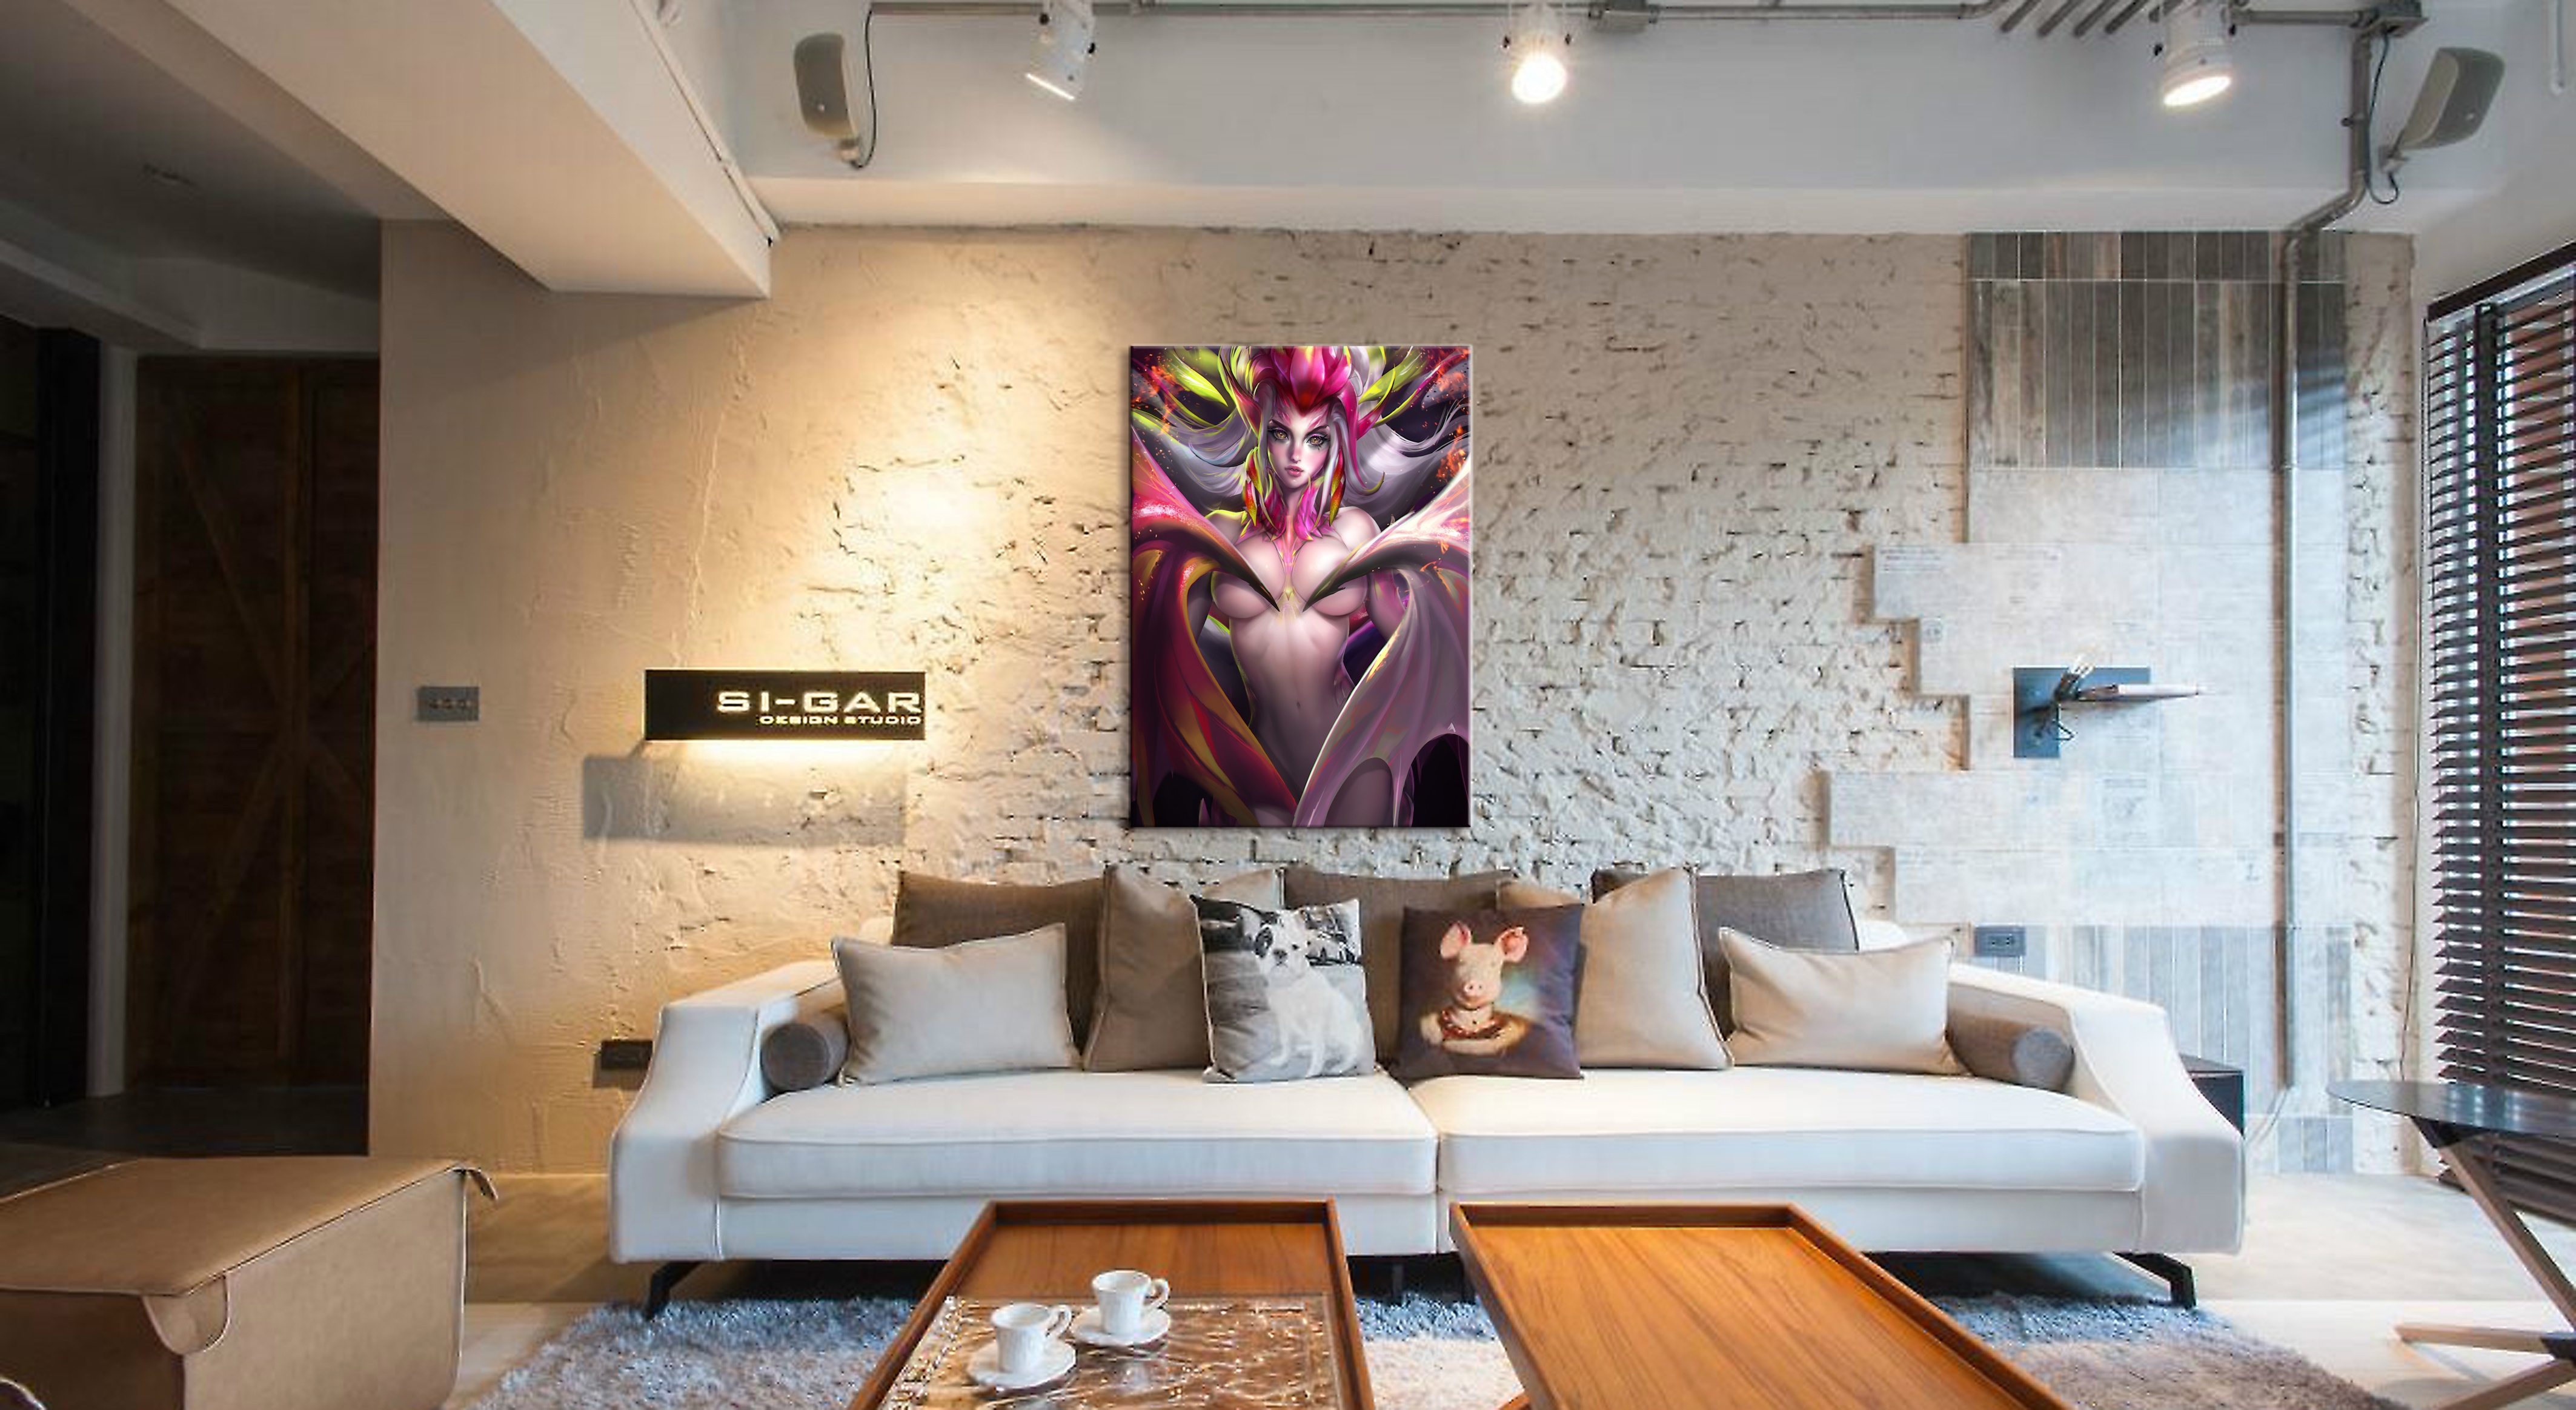 Home Decor Canvas Dragon Fruit Faerie Nude 1 Piece Anime Sexy Girl Art Poster Prints Picture Wall Decoration Painting Wholesale in Painting Calligraphy from Home Garden